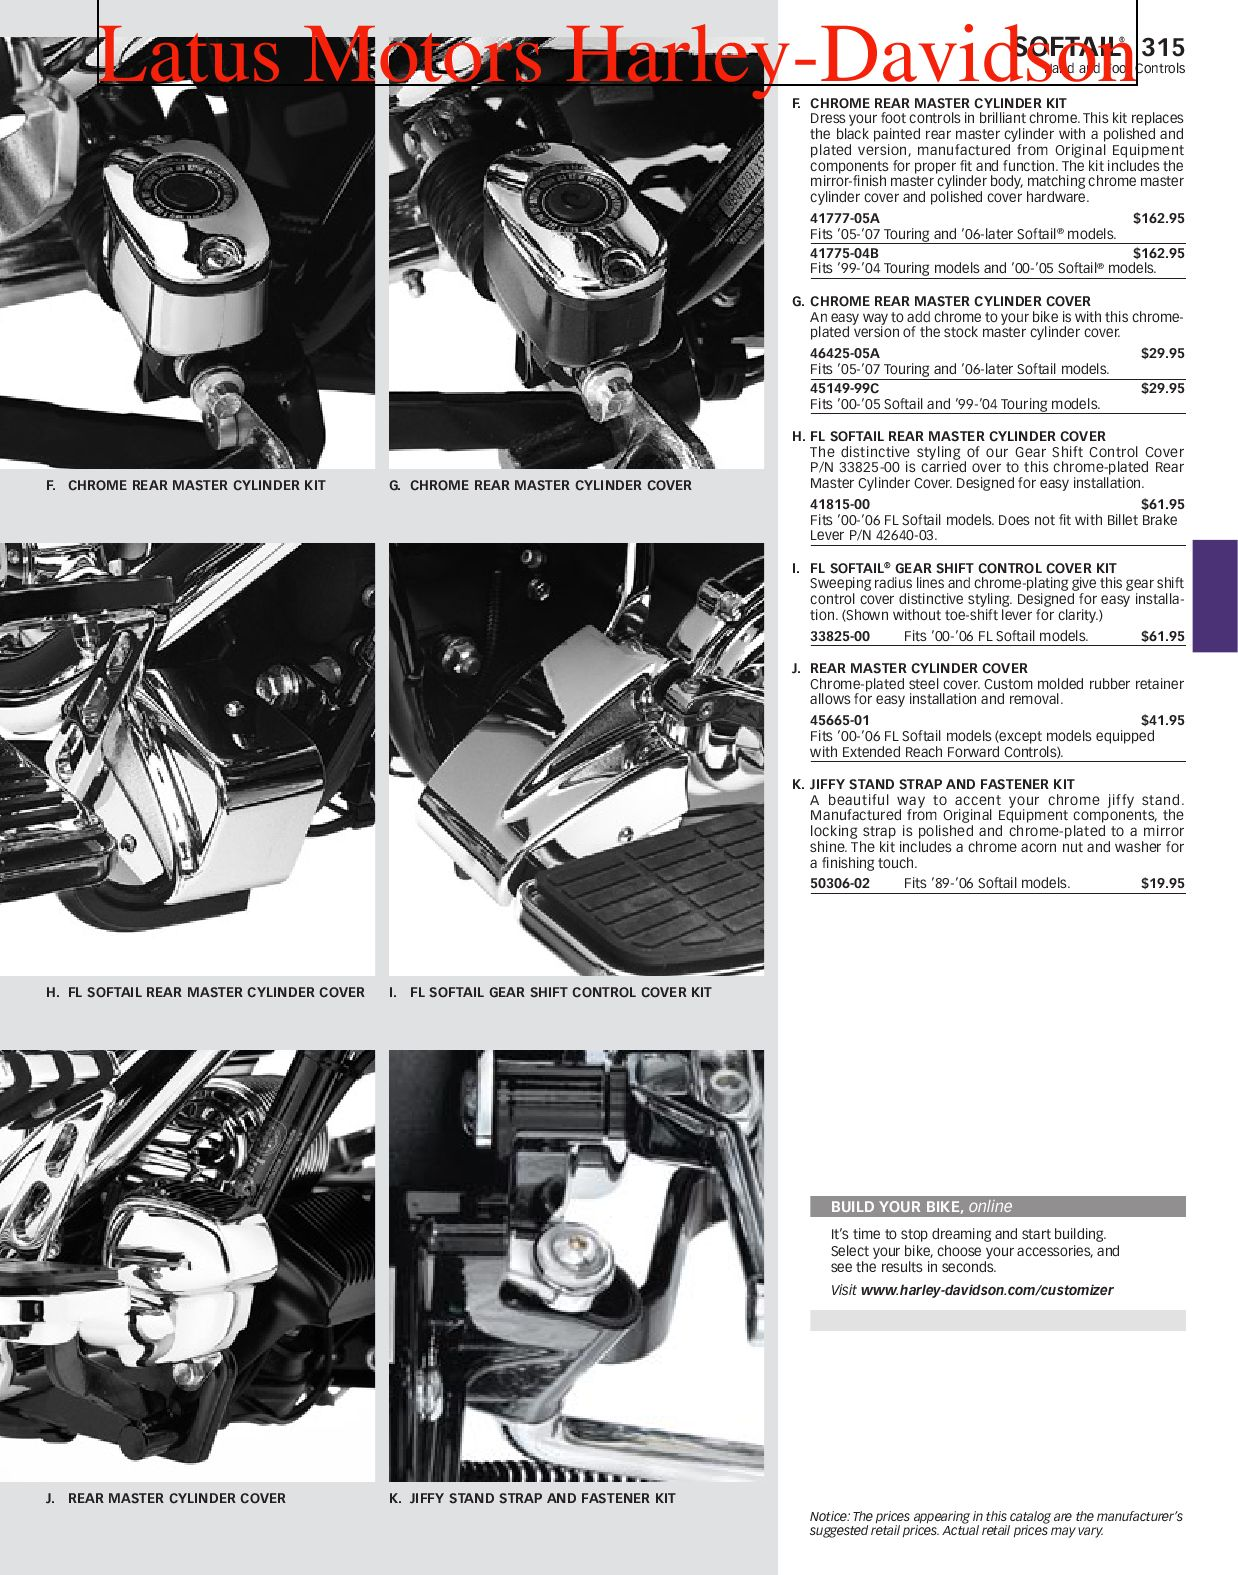 Part 1 Harley-Davidson Parts and Accessories Catalog by